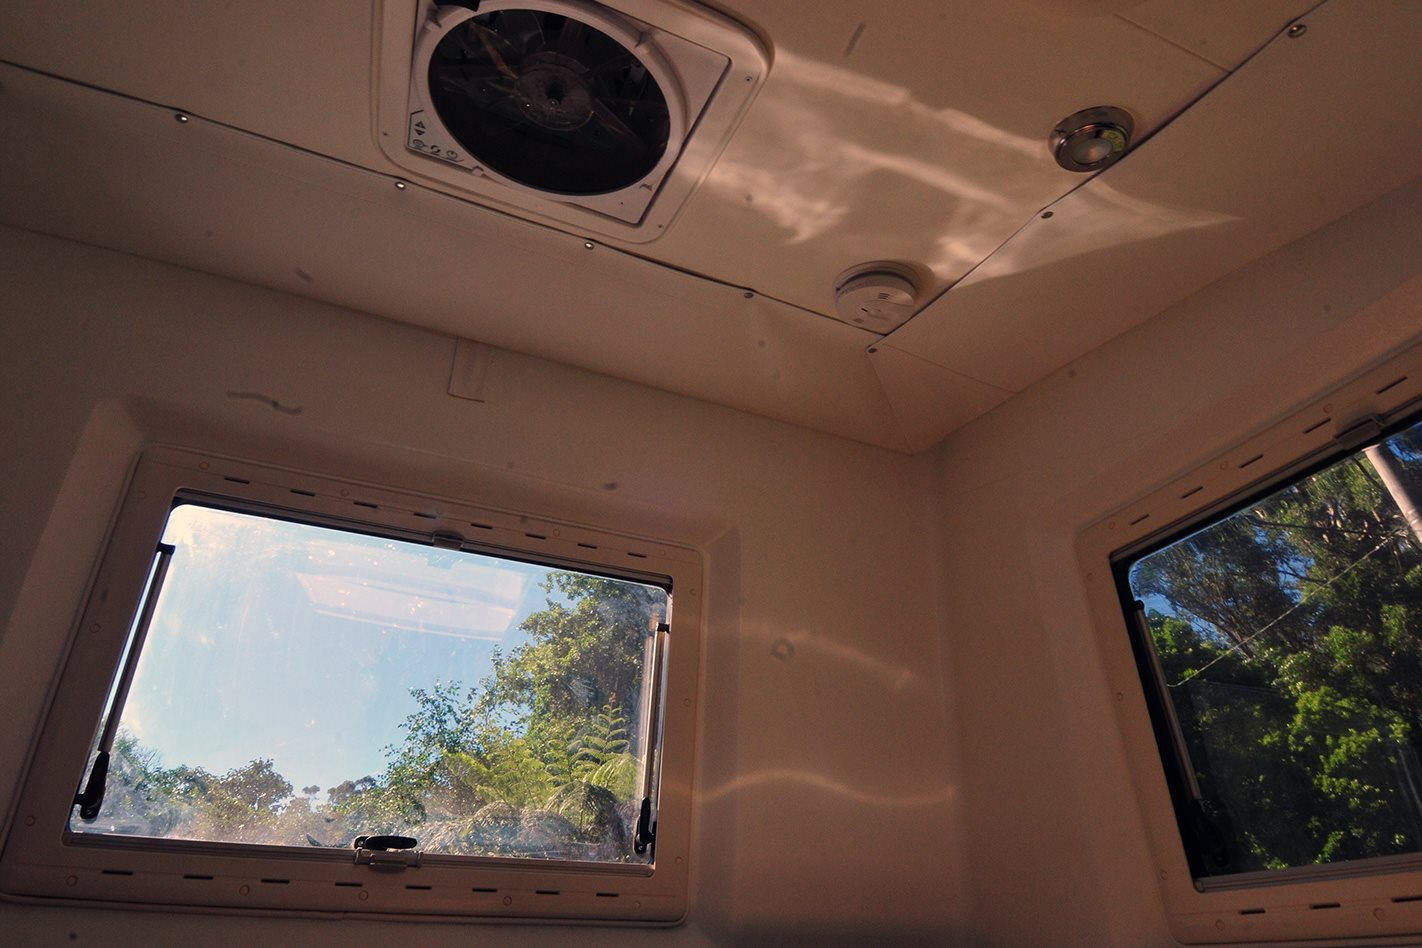 XP Camper ventilation